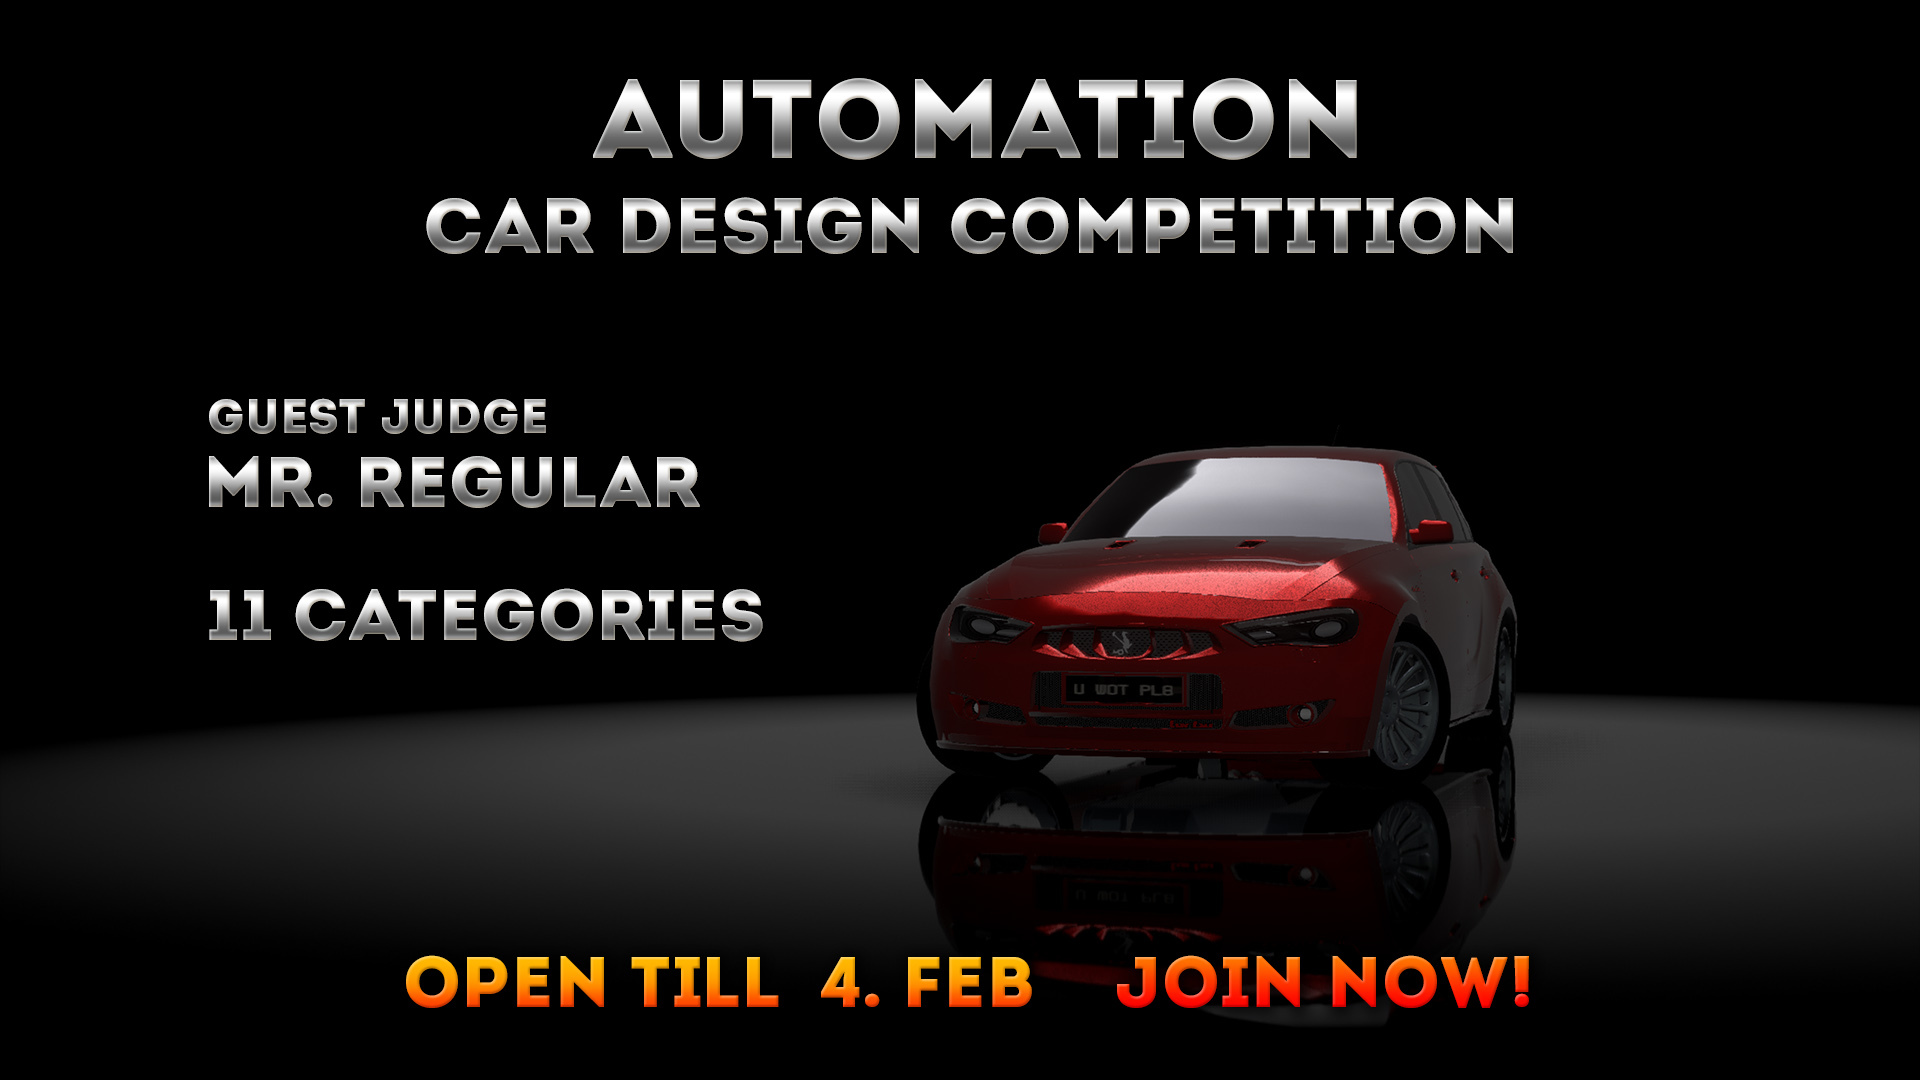 Automation - The Car Company Tycoon Game :: Car Design Competition ...